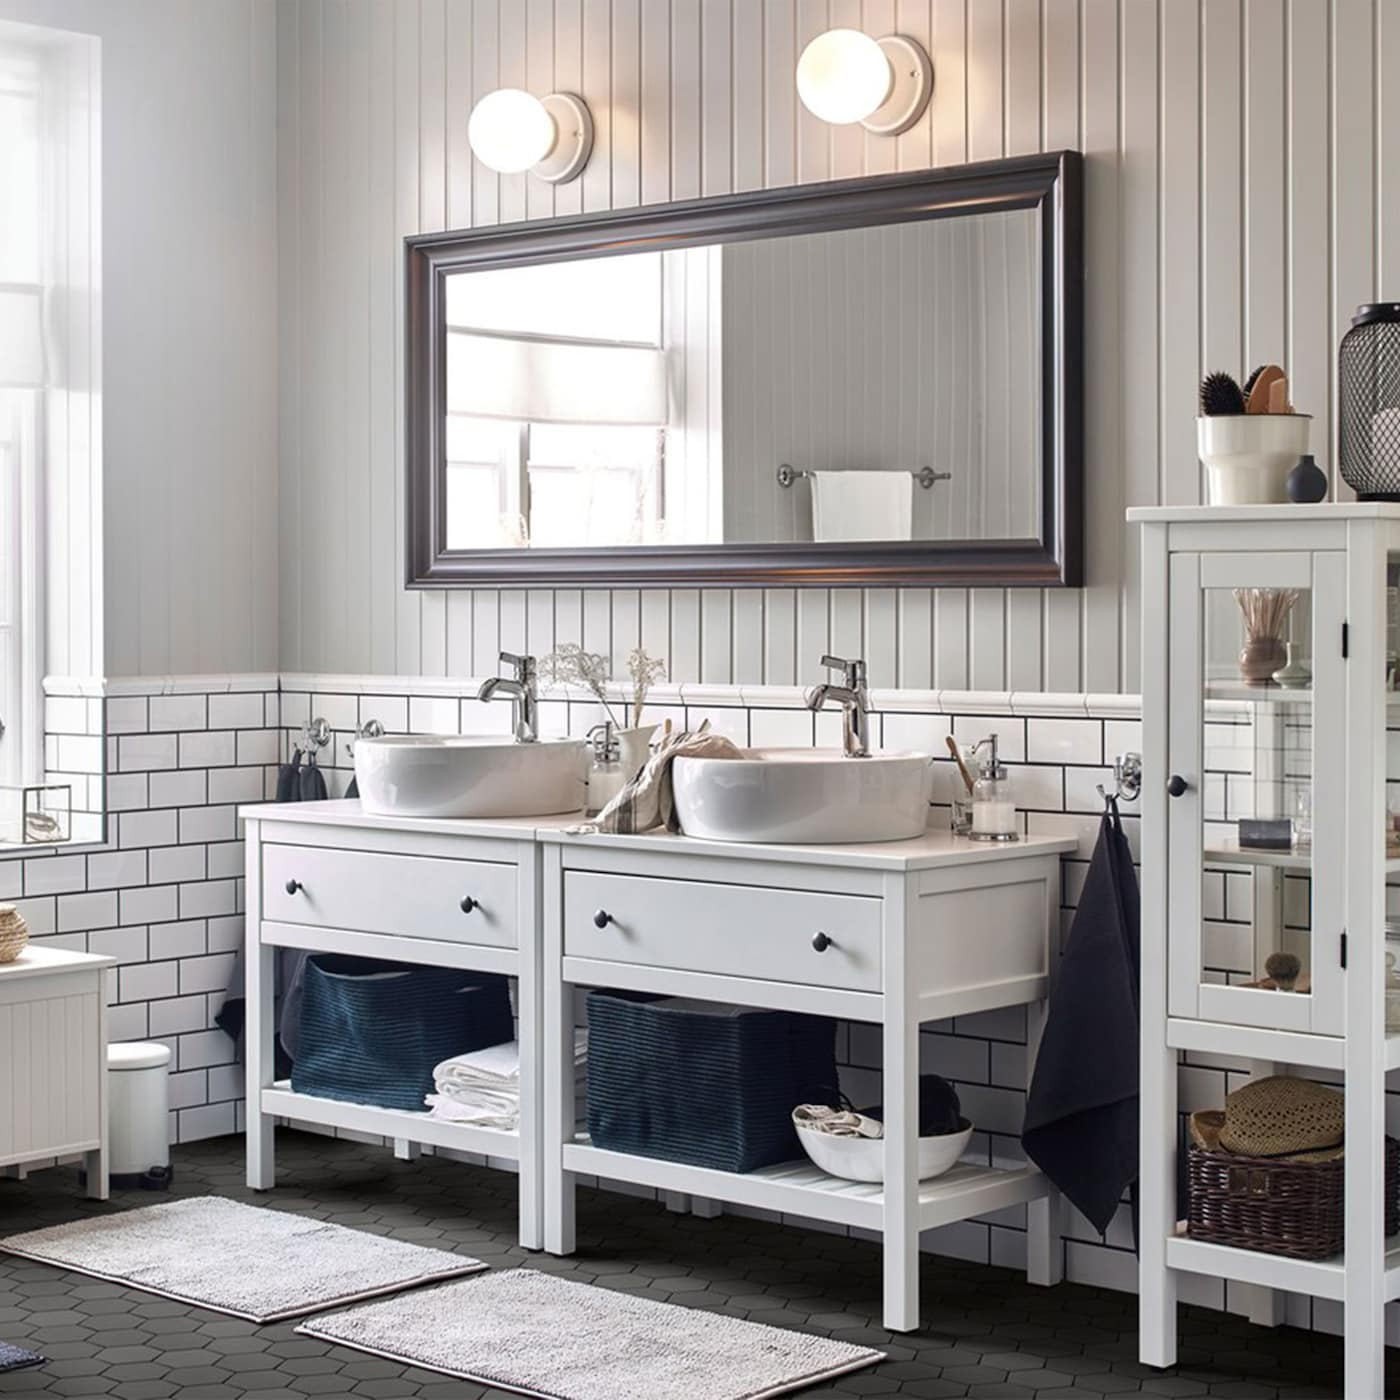 Furnishing ideas & inspiration for your bathroom - IKEA Switzerland